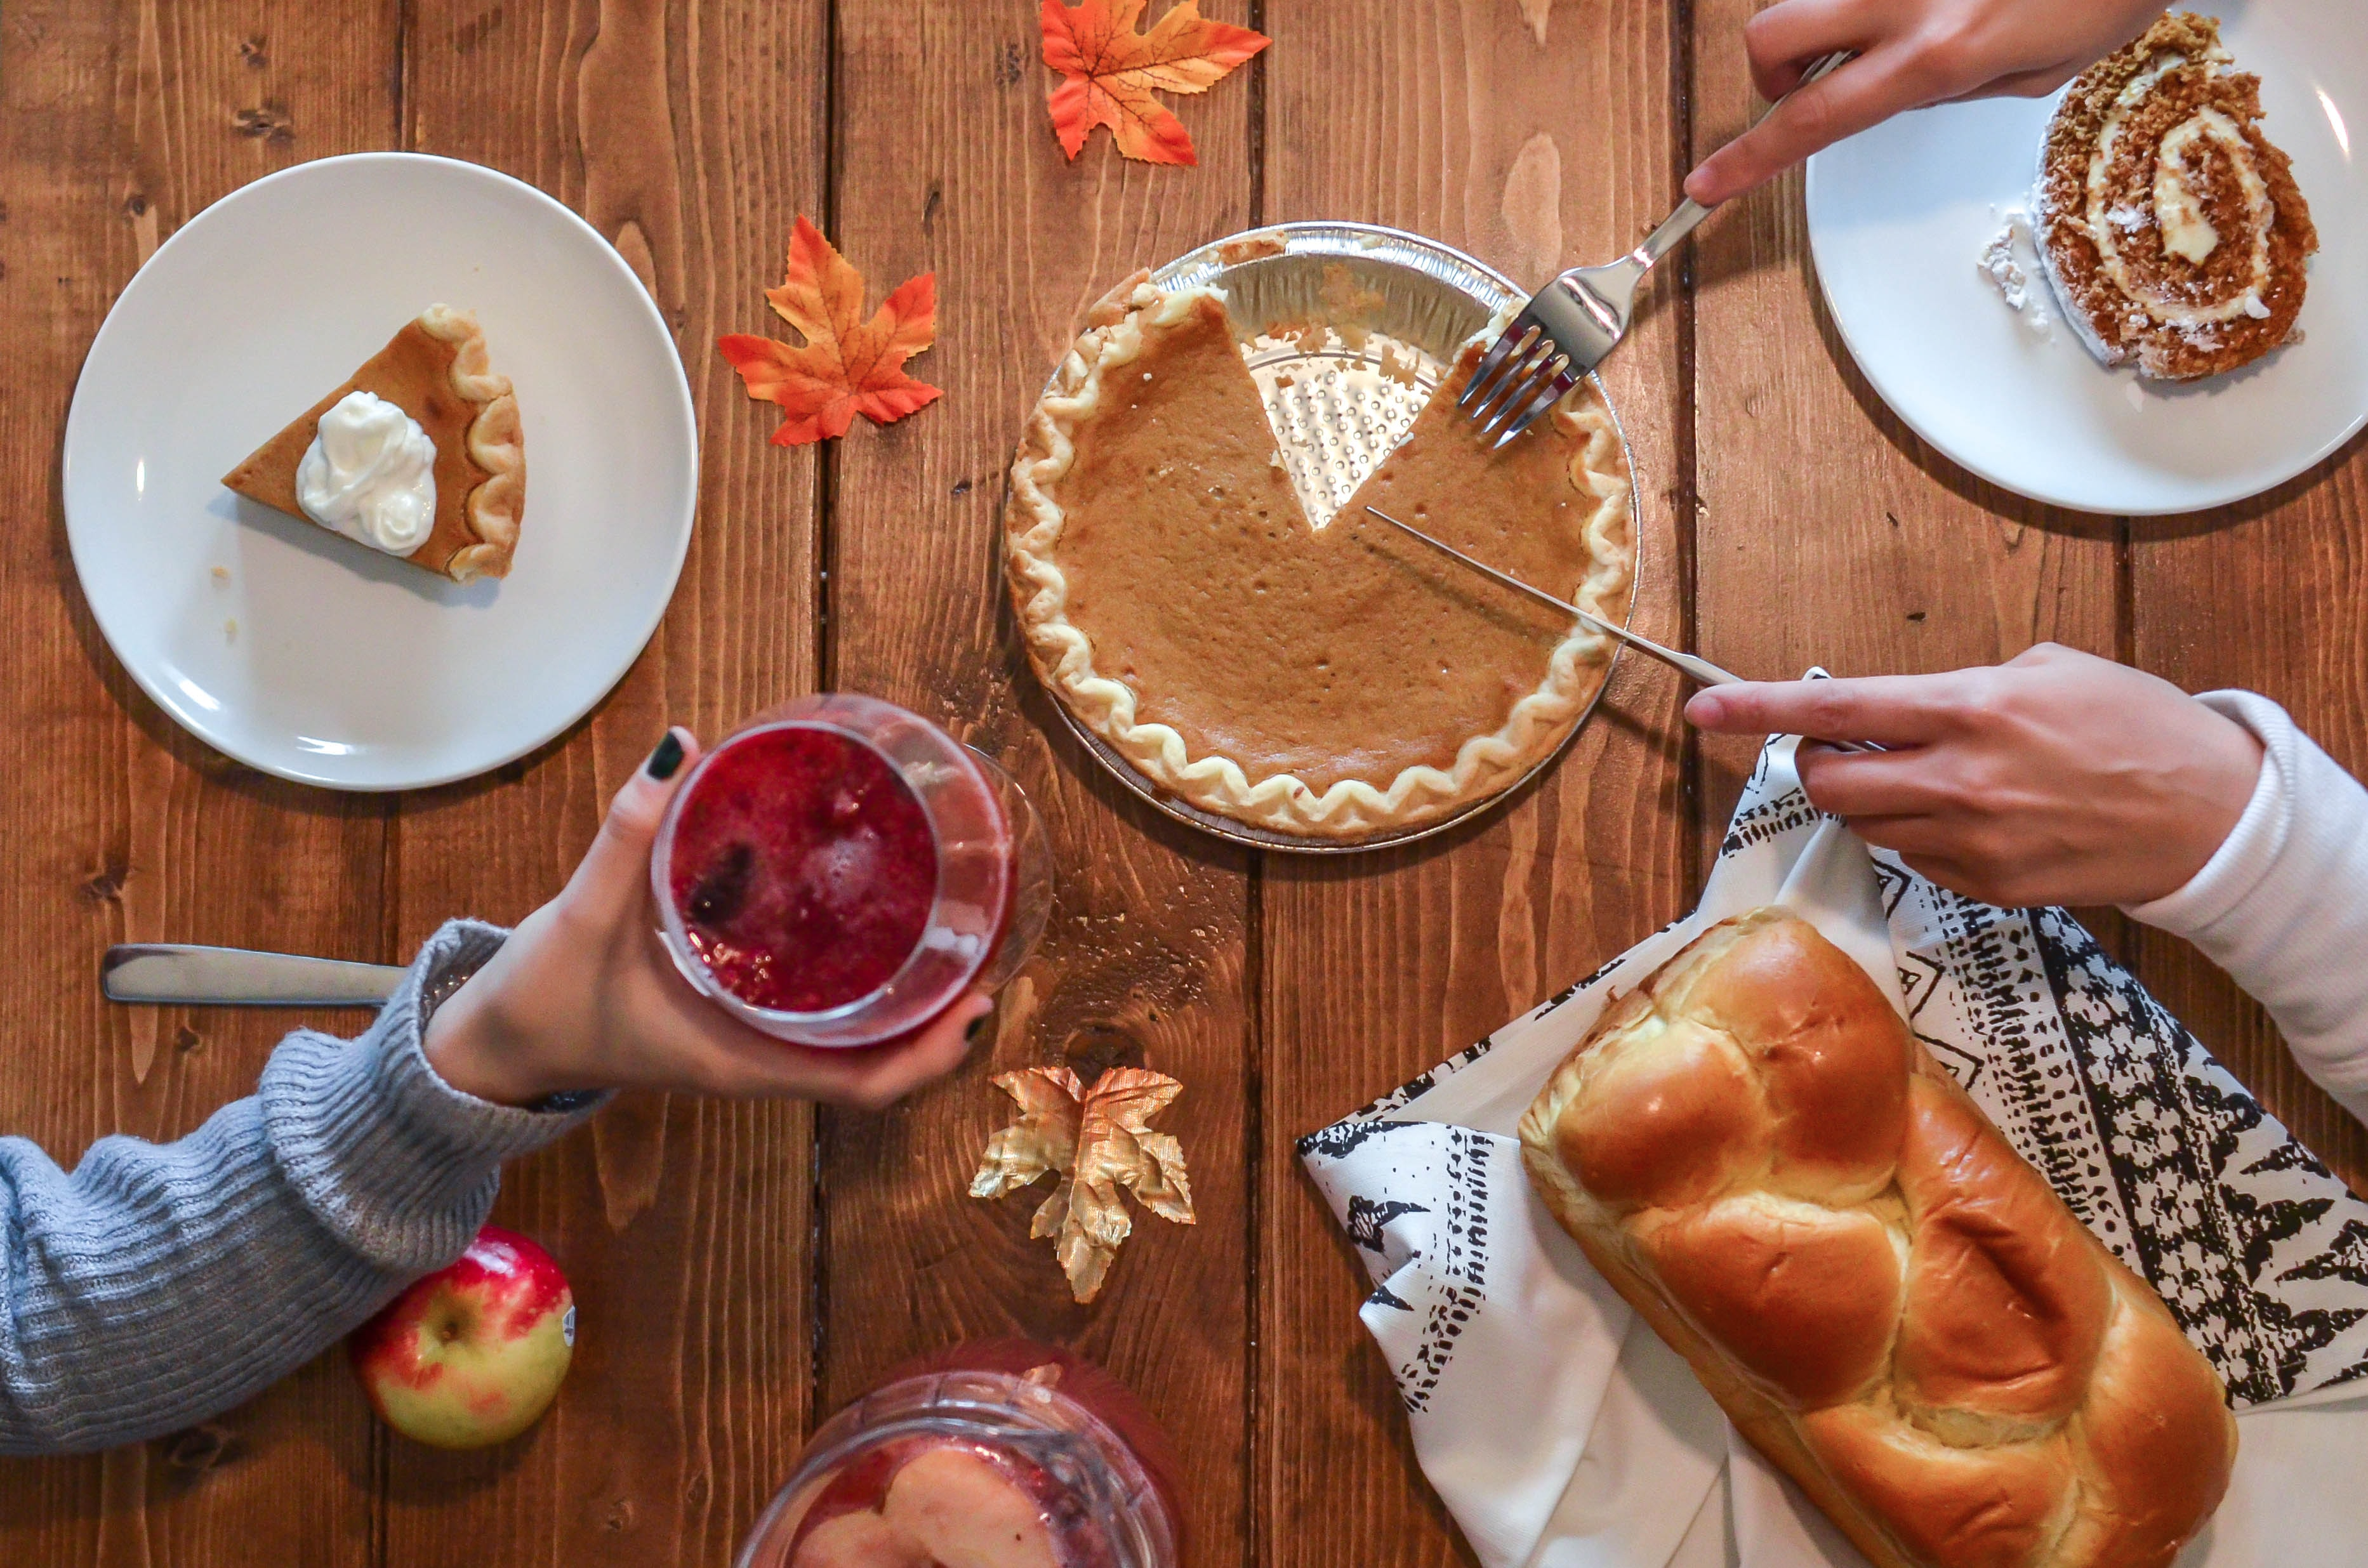 Thanksgiving brings together some of my favorite things...food, family, food, and more food!